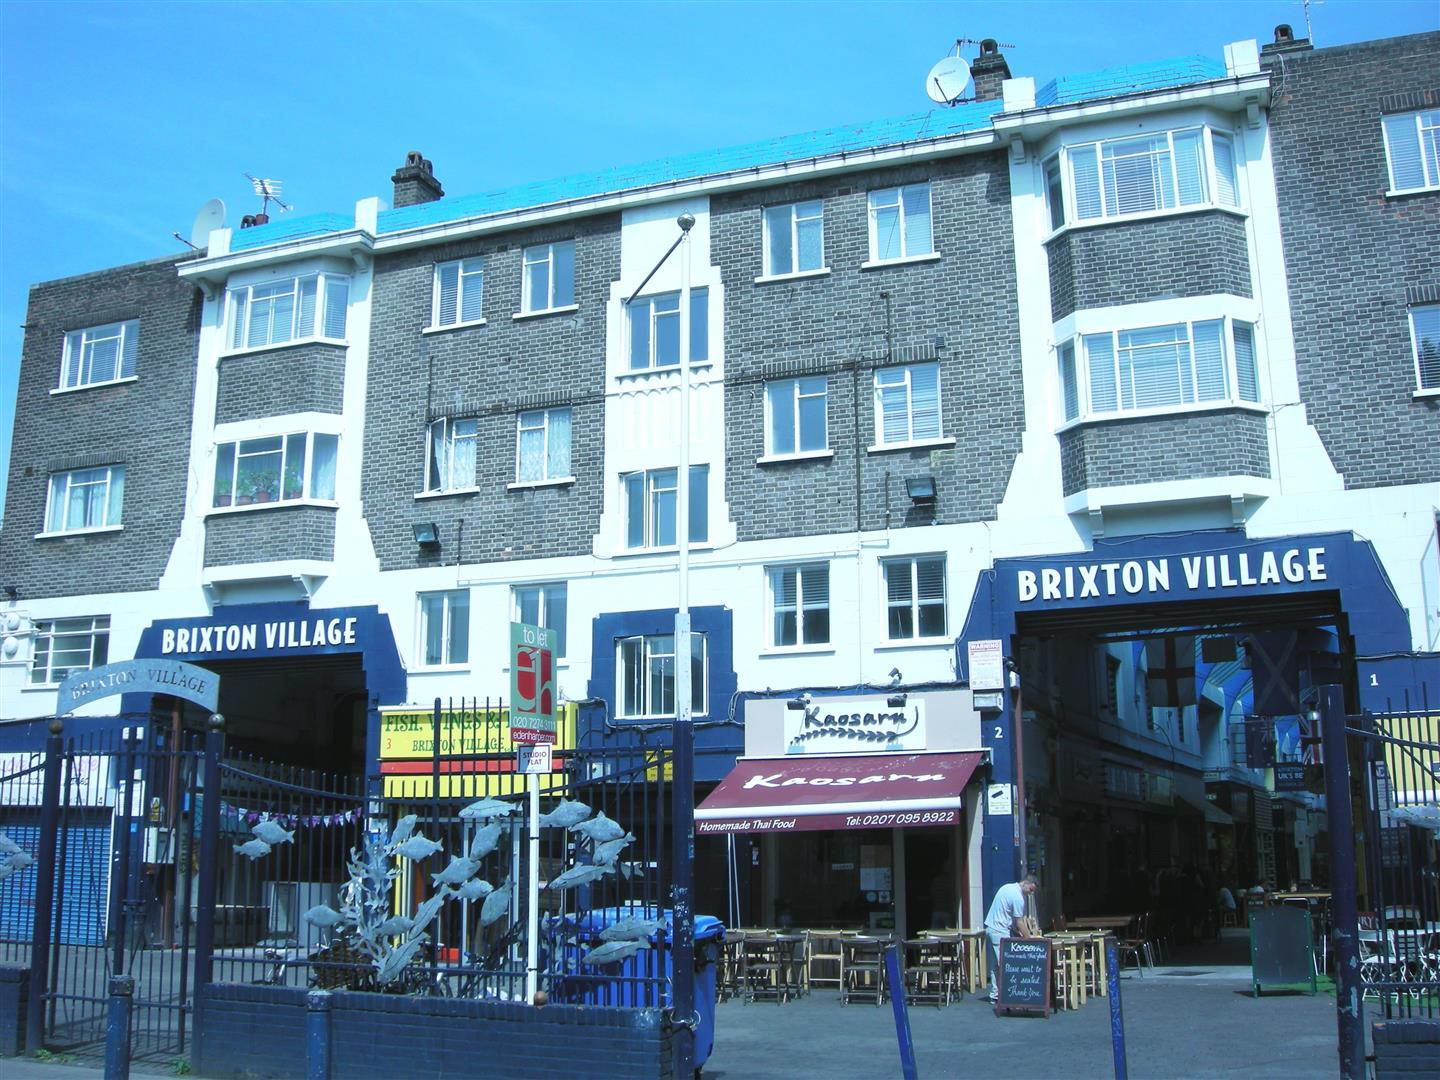 Brixton Village, Coldharbour Lane, Brixton Image 10